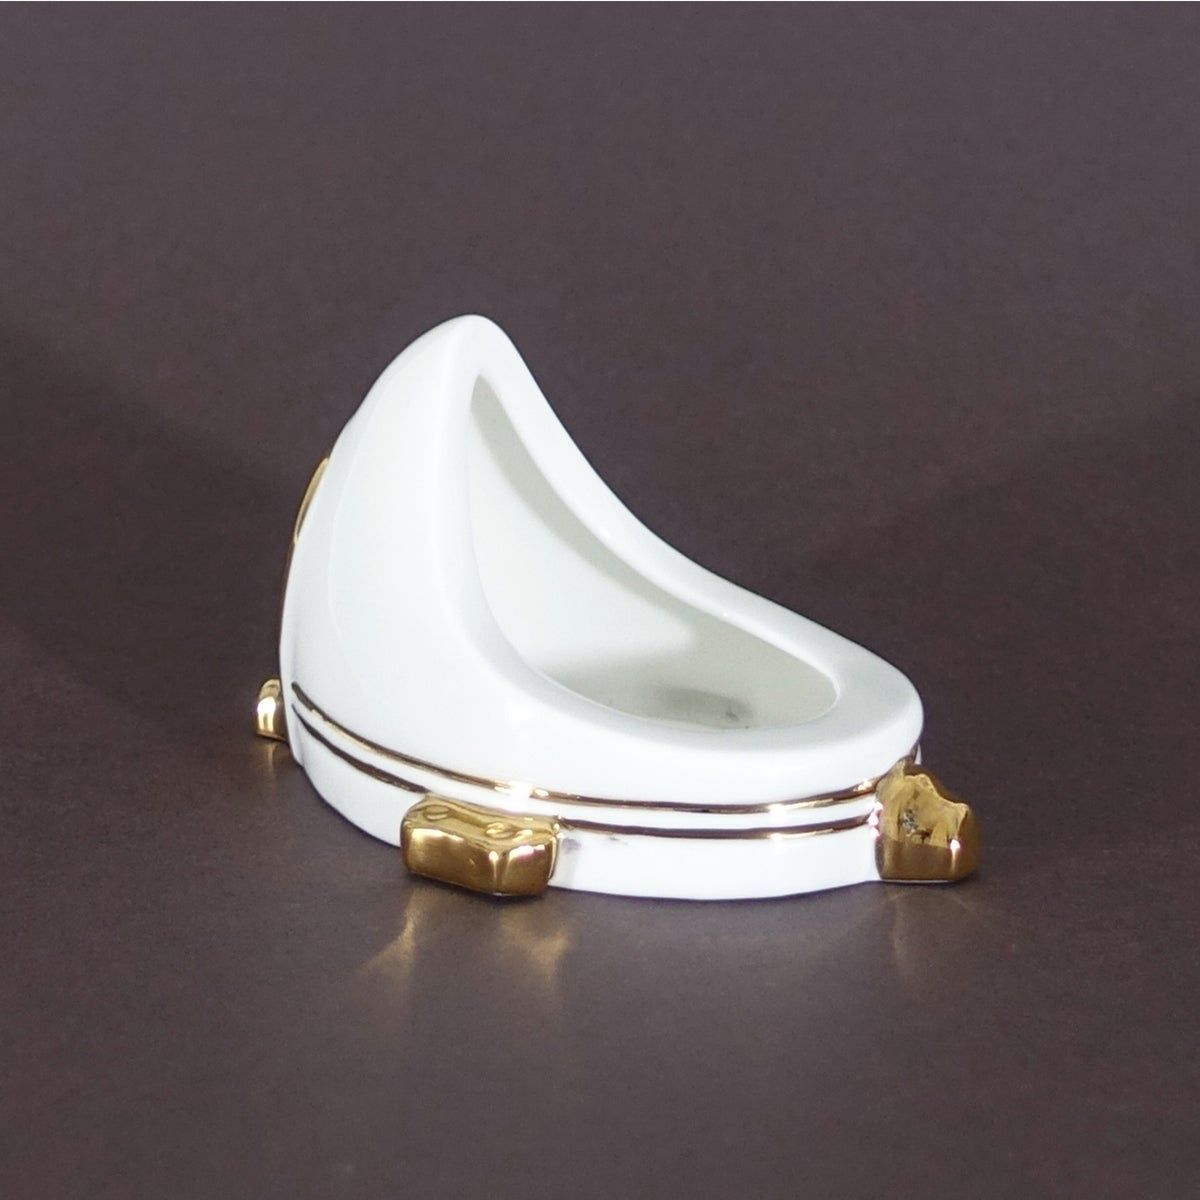 Image of Special Gold Edition Dada Egg Cup -  02